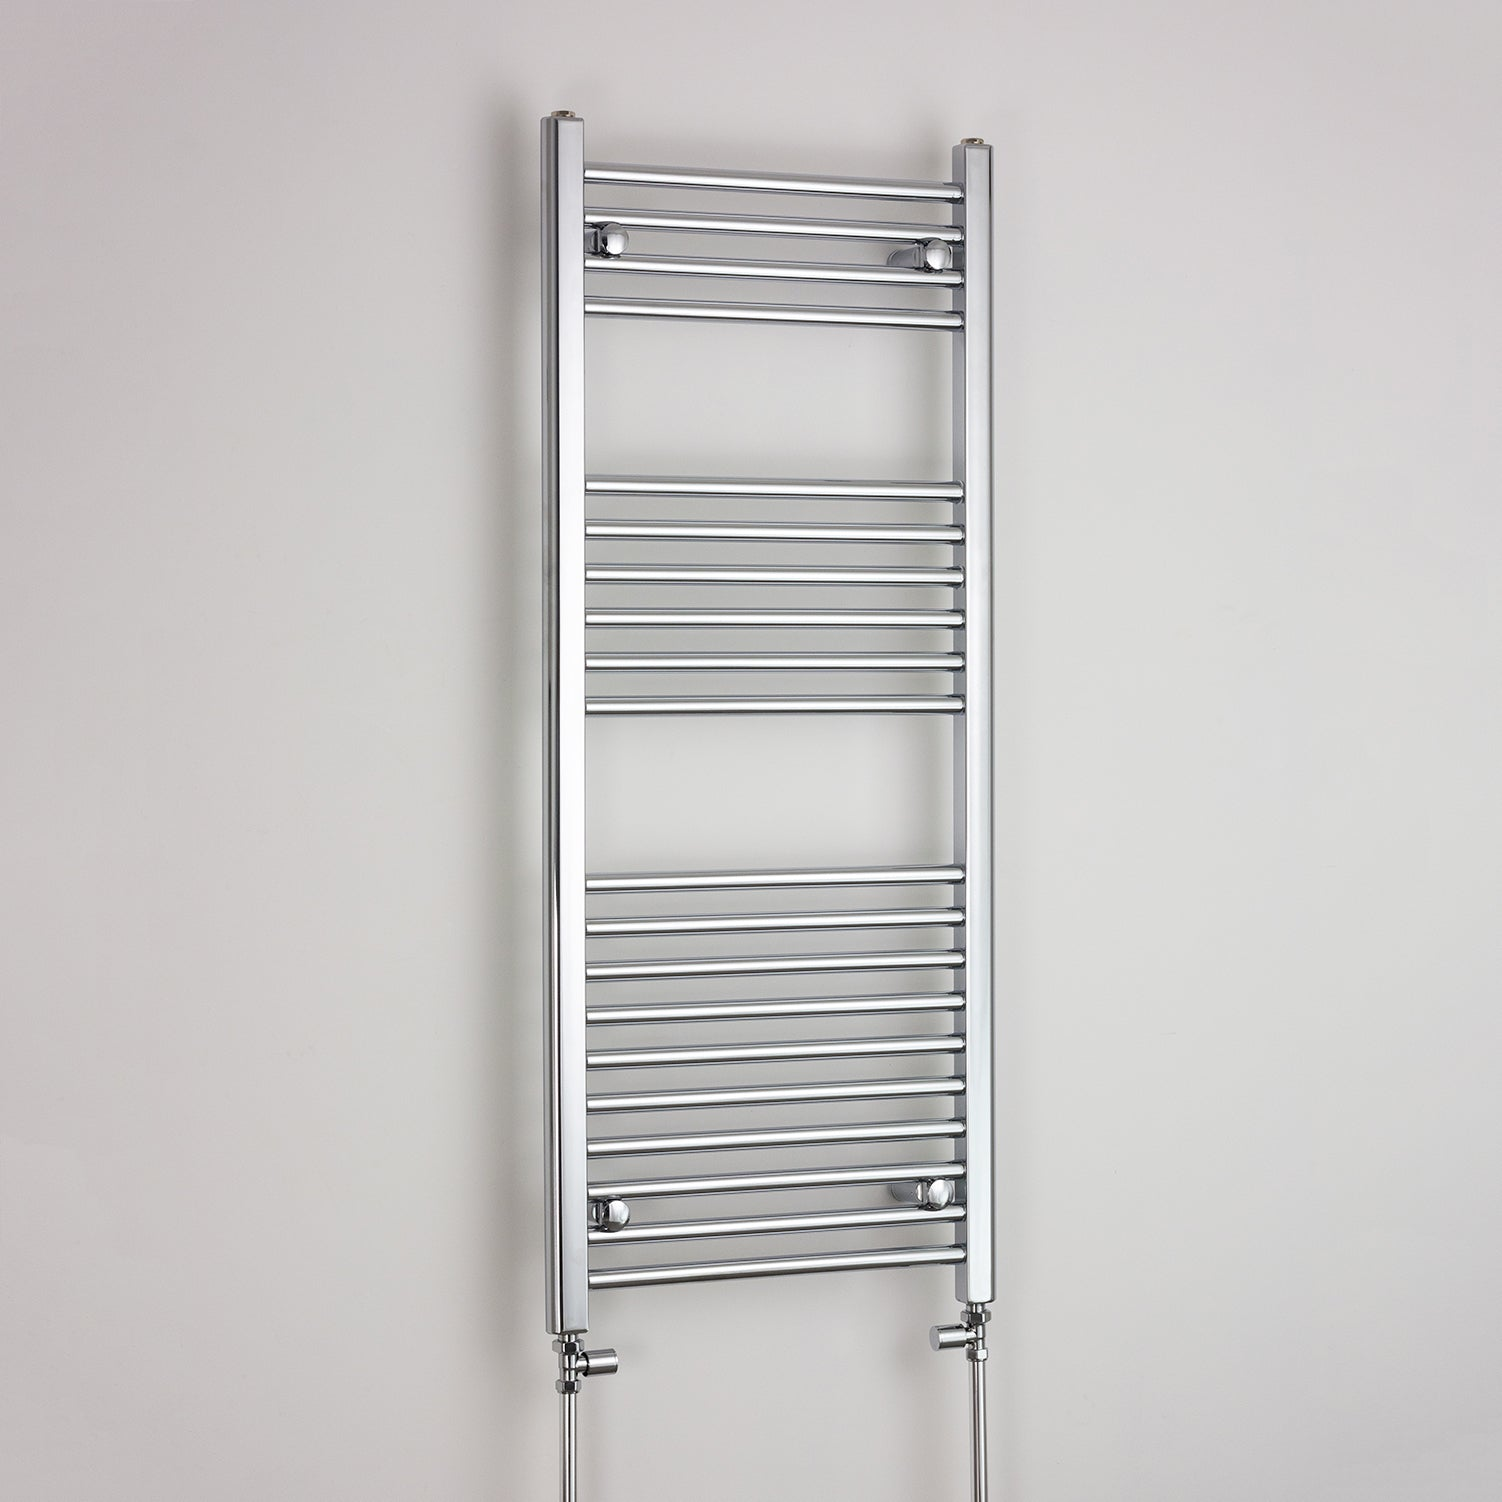 400mm Wide 1200mm High Curved Chrome Heated Towel Rail Radiator HTR,With Straight Valve